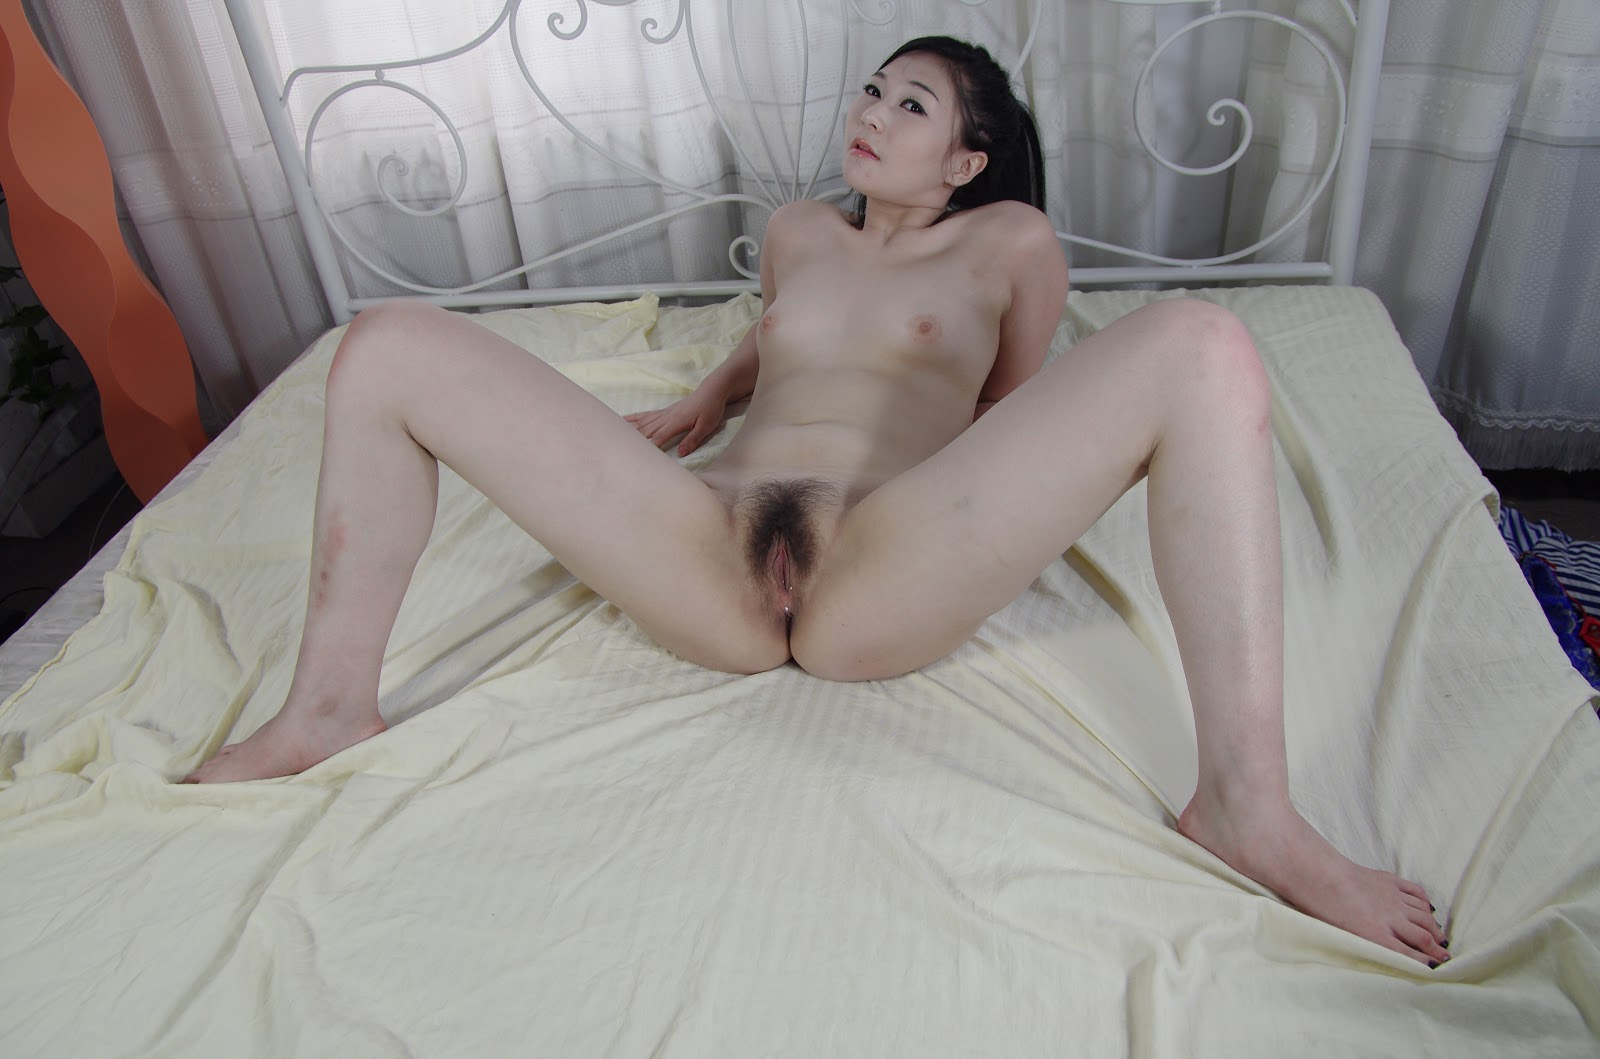 Chinese Nude_Art_Photos_-_256_-_YangYang_Vol_5.rar